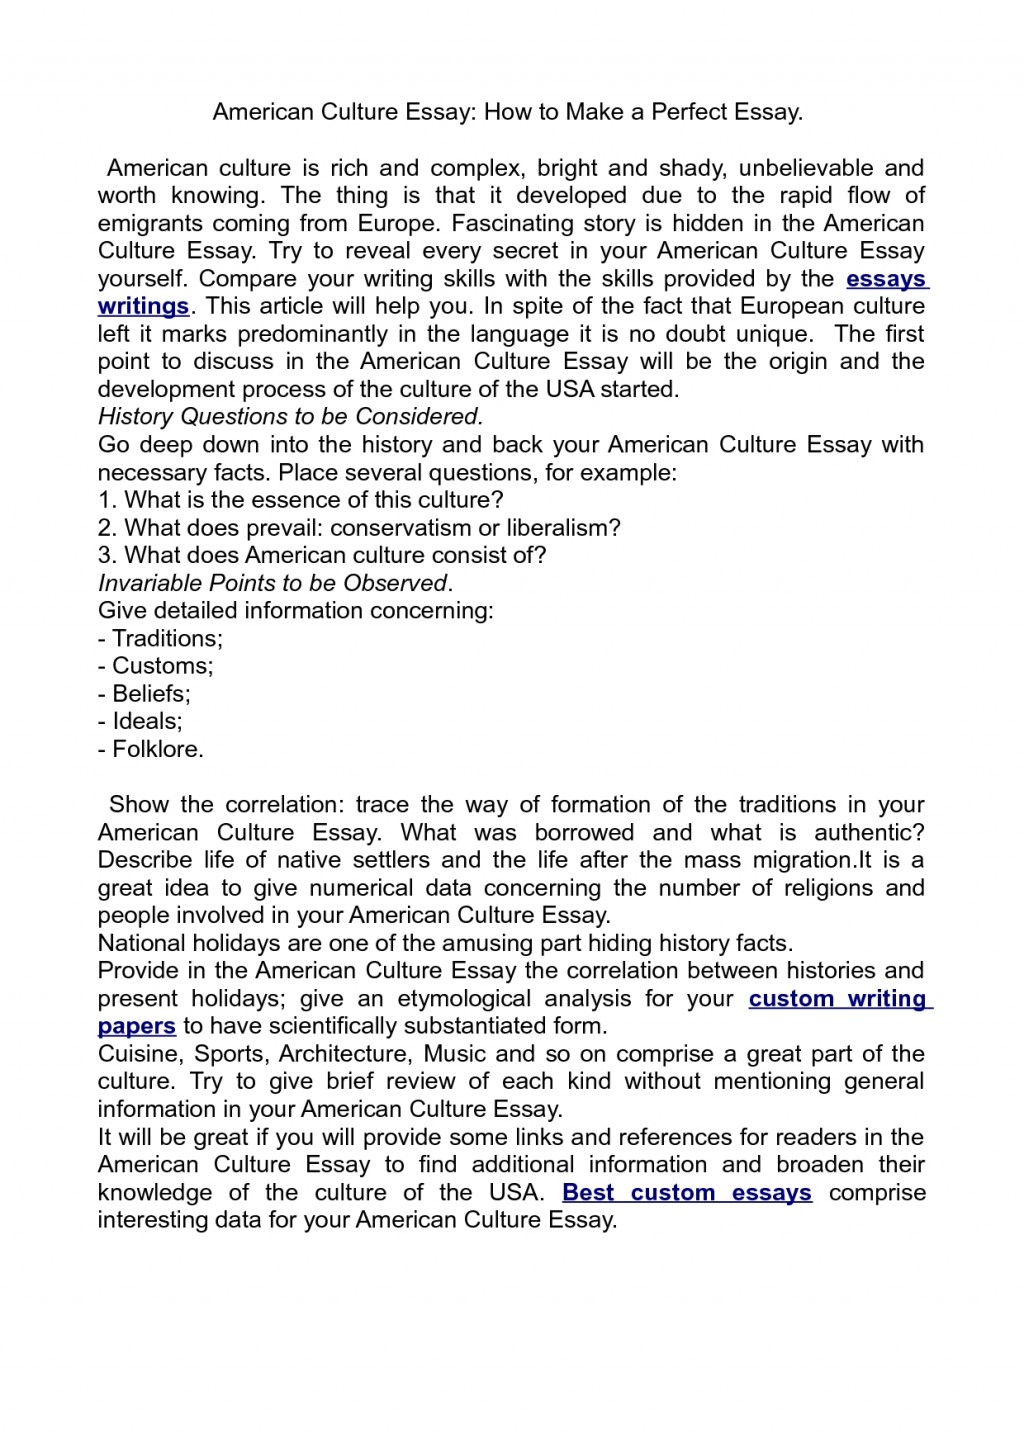 002 Essay Example What Is An American Stupendous Ideas Definition Crevecoeur Summary Large